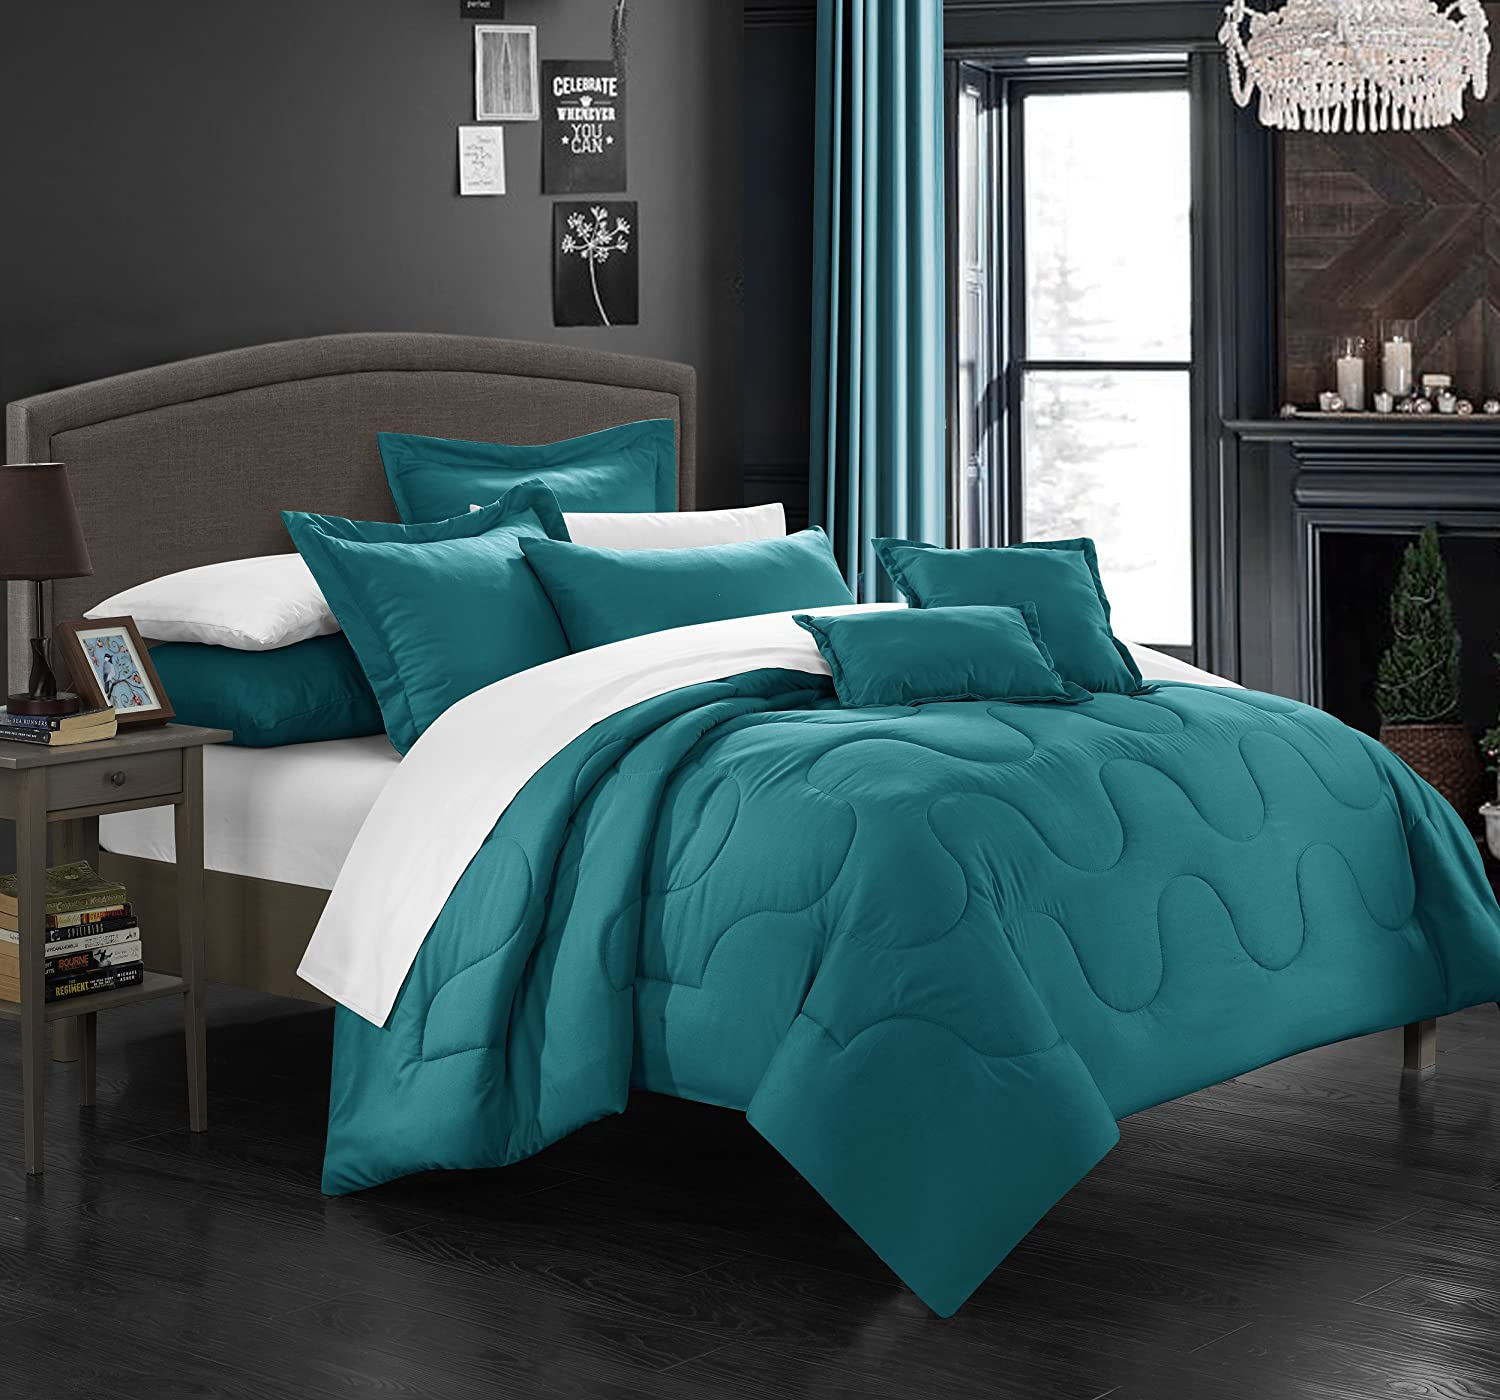 Beautiful teal bedroom sets photos home design ideas for Home designs comforter